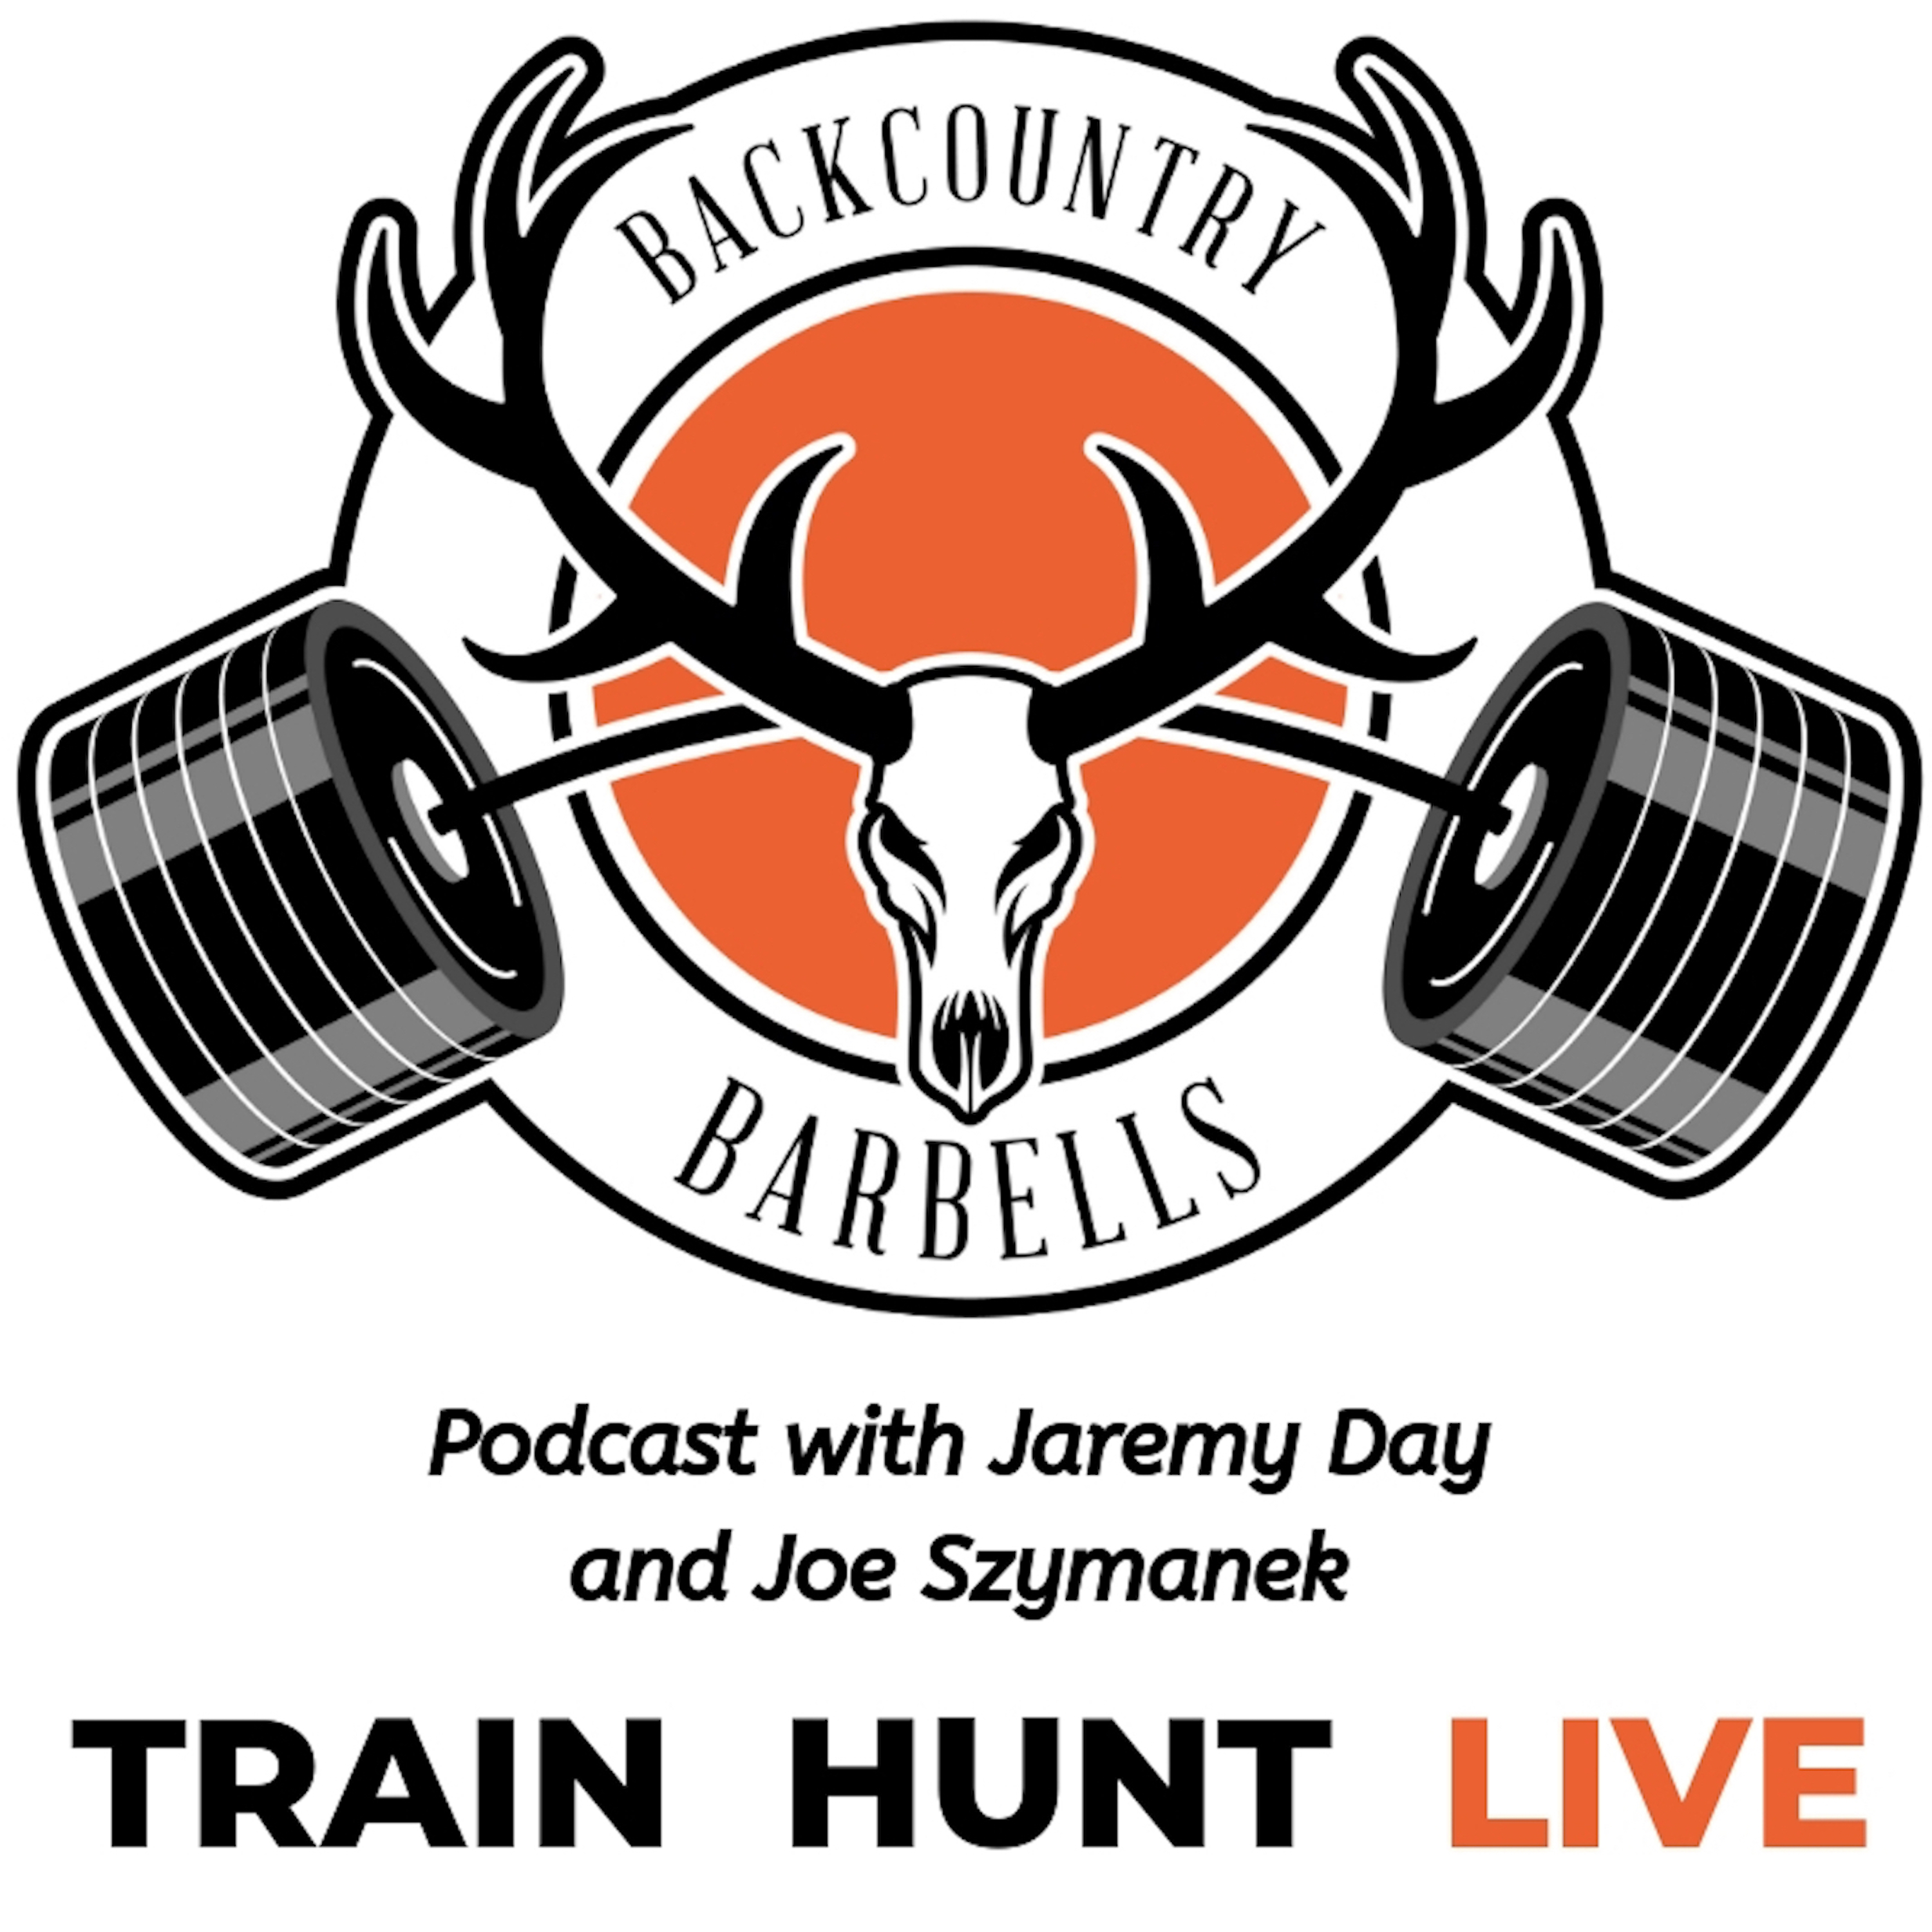 Artwork for podcast Backcountry and Barbells